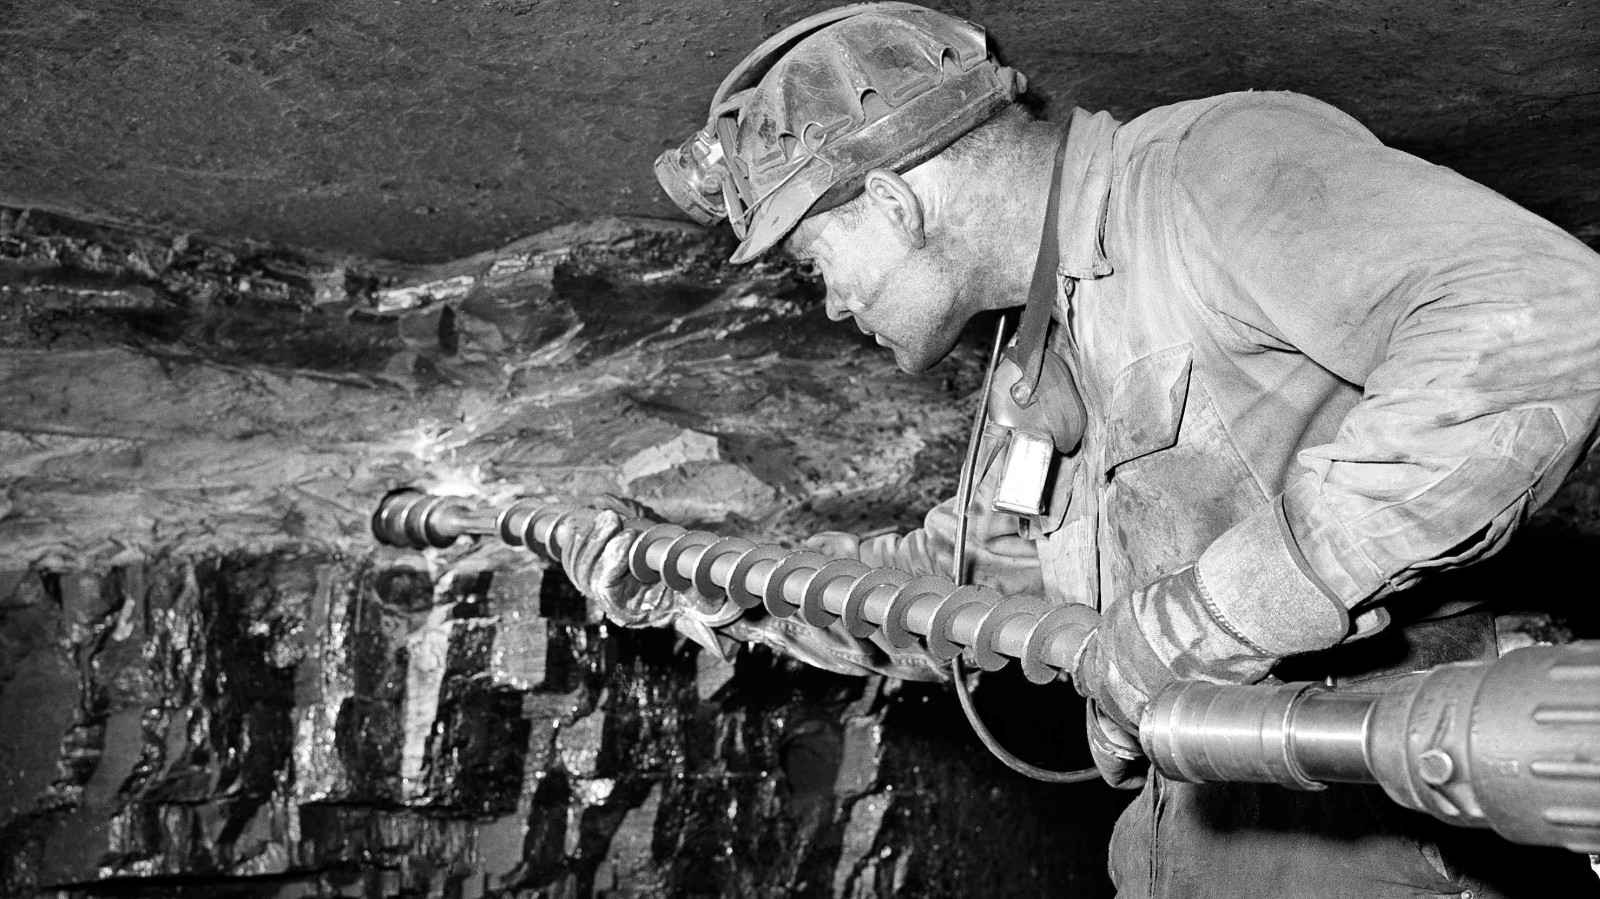 Driller Granville Jackson uses a long auger in a coal mine.